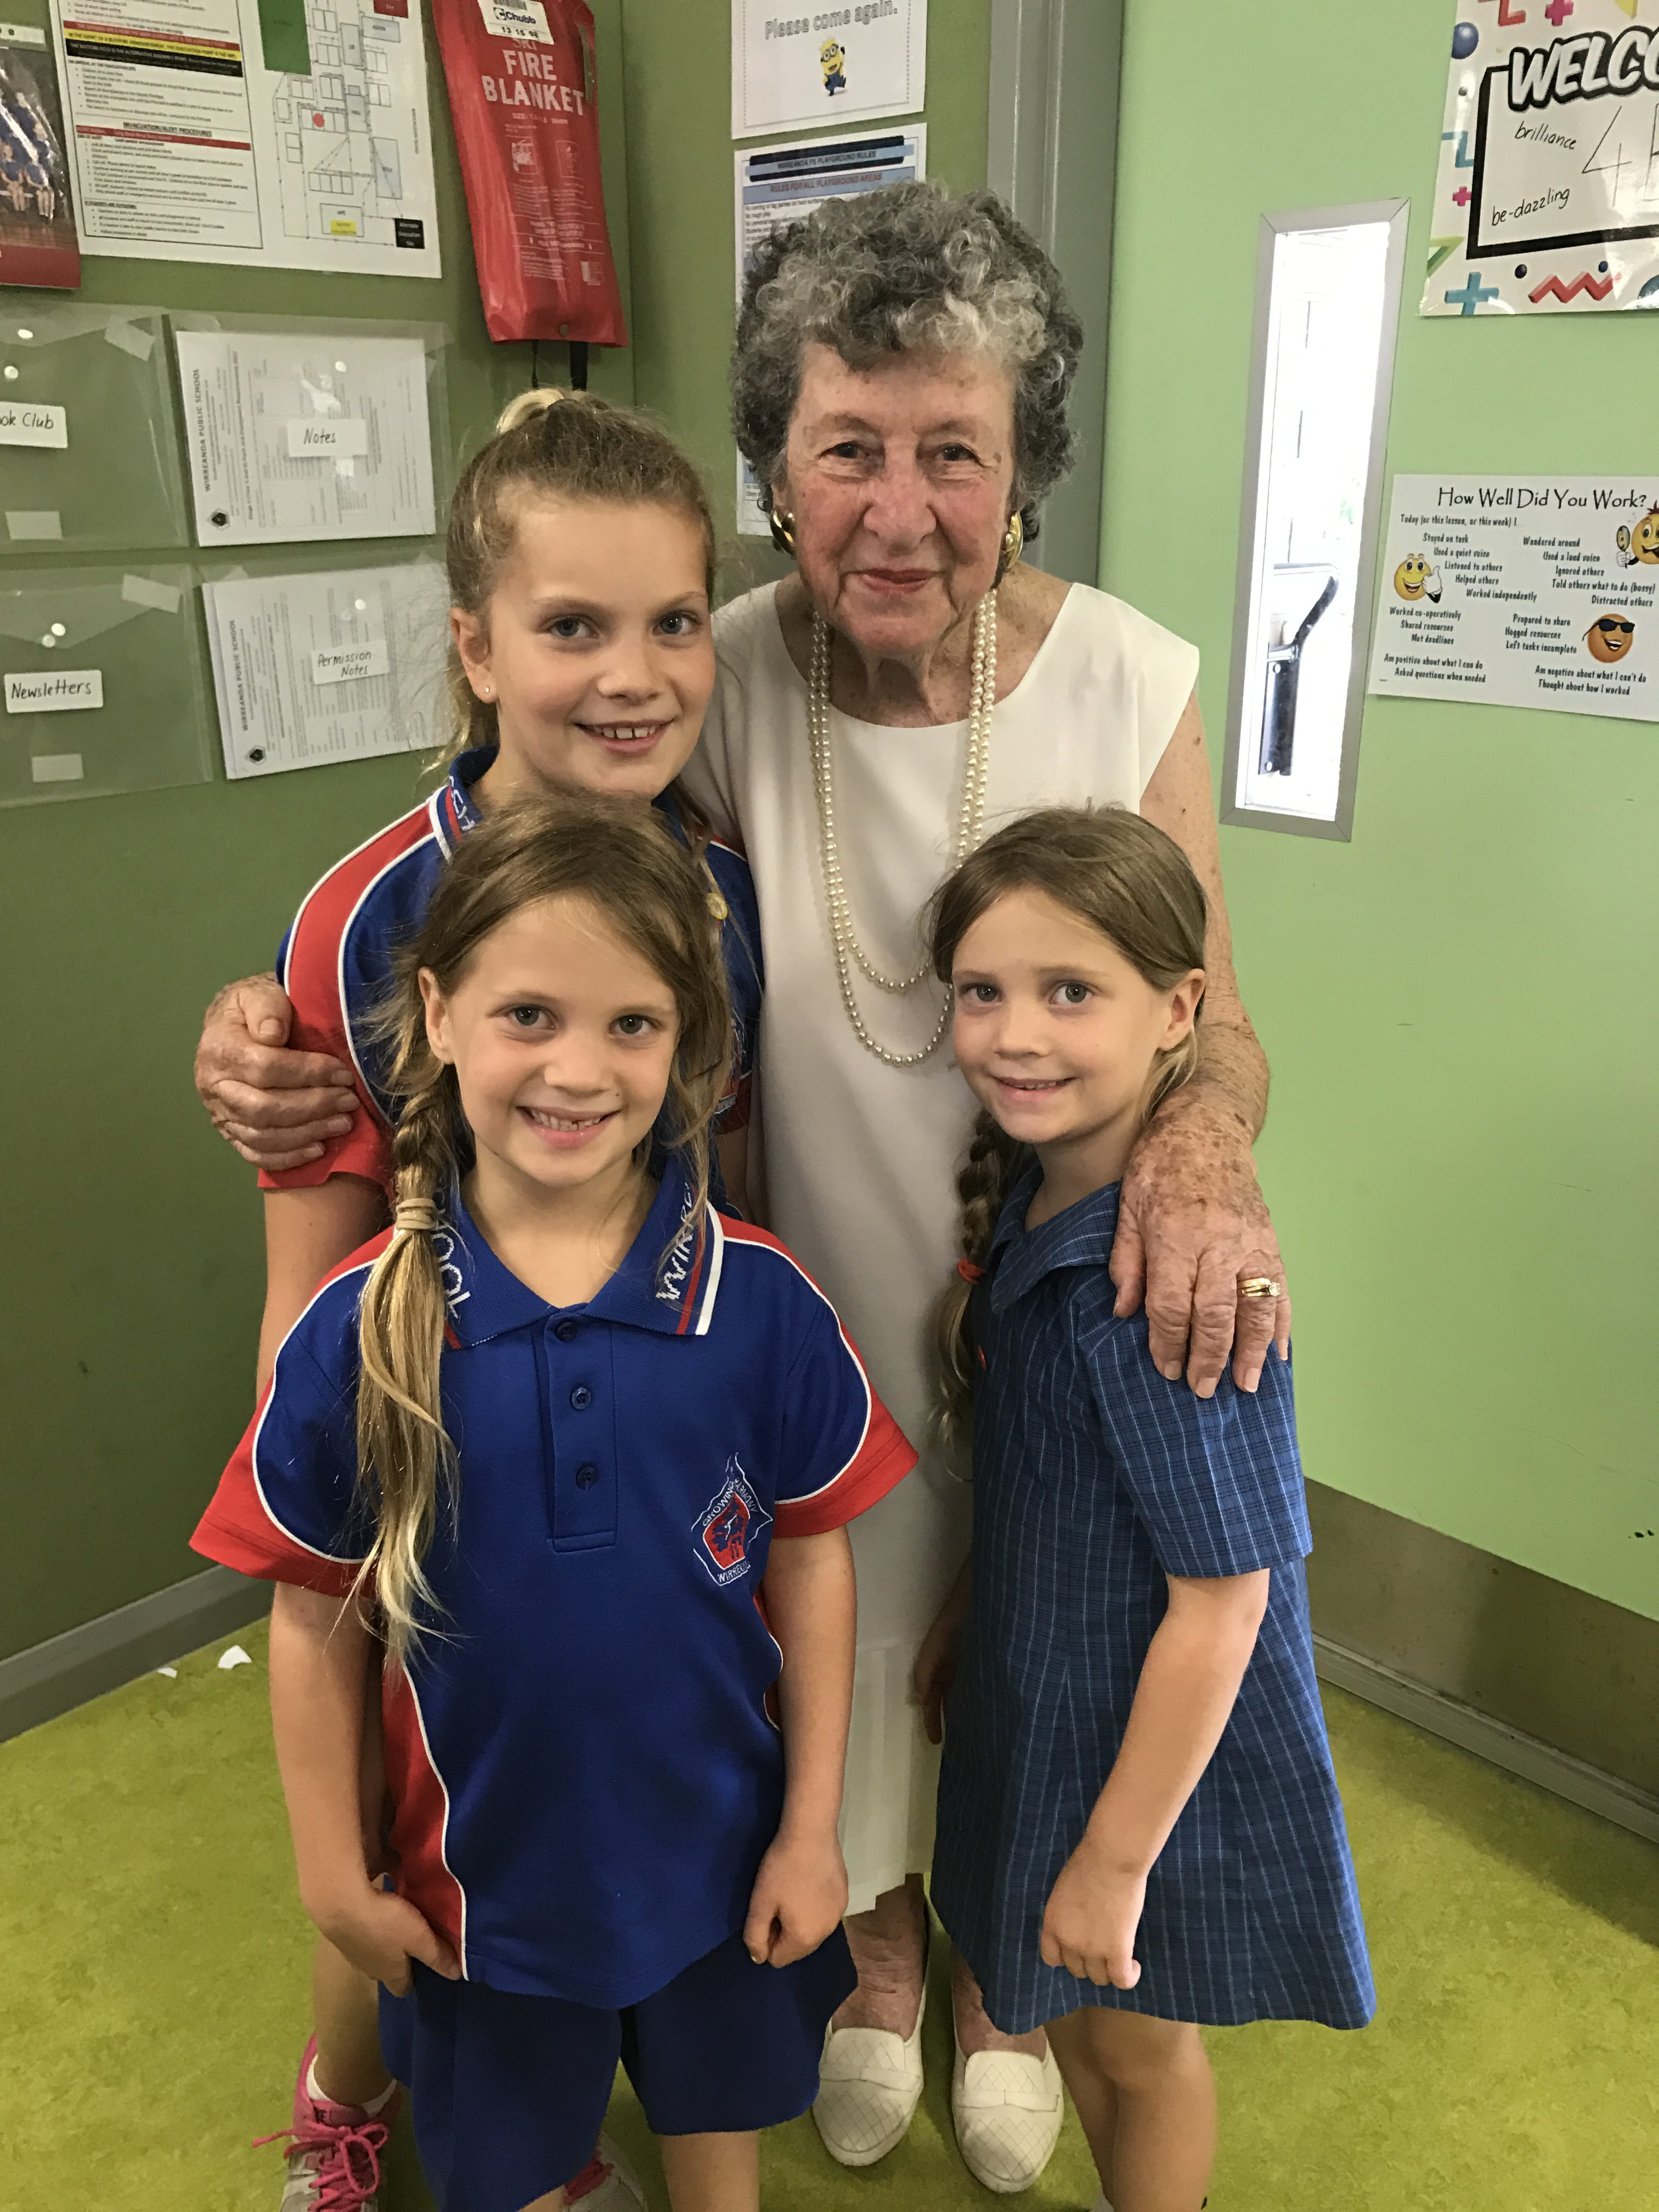 Lexi, Lucy and Lyla Magnee, with Great Nan Gwen Martin, 85 years old.